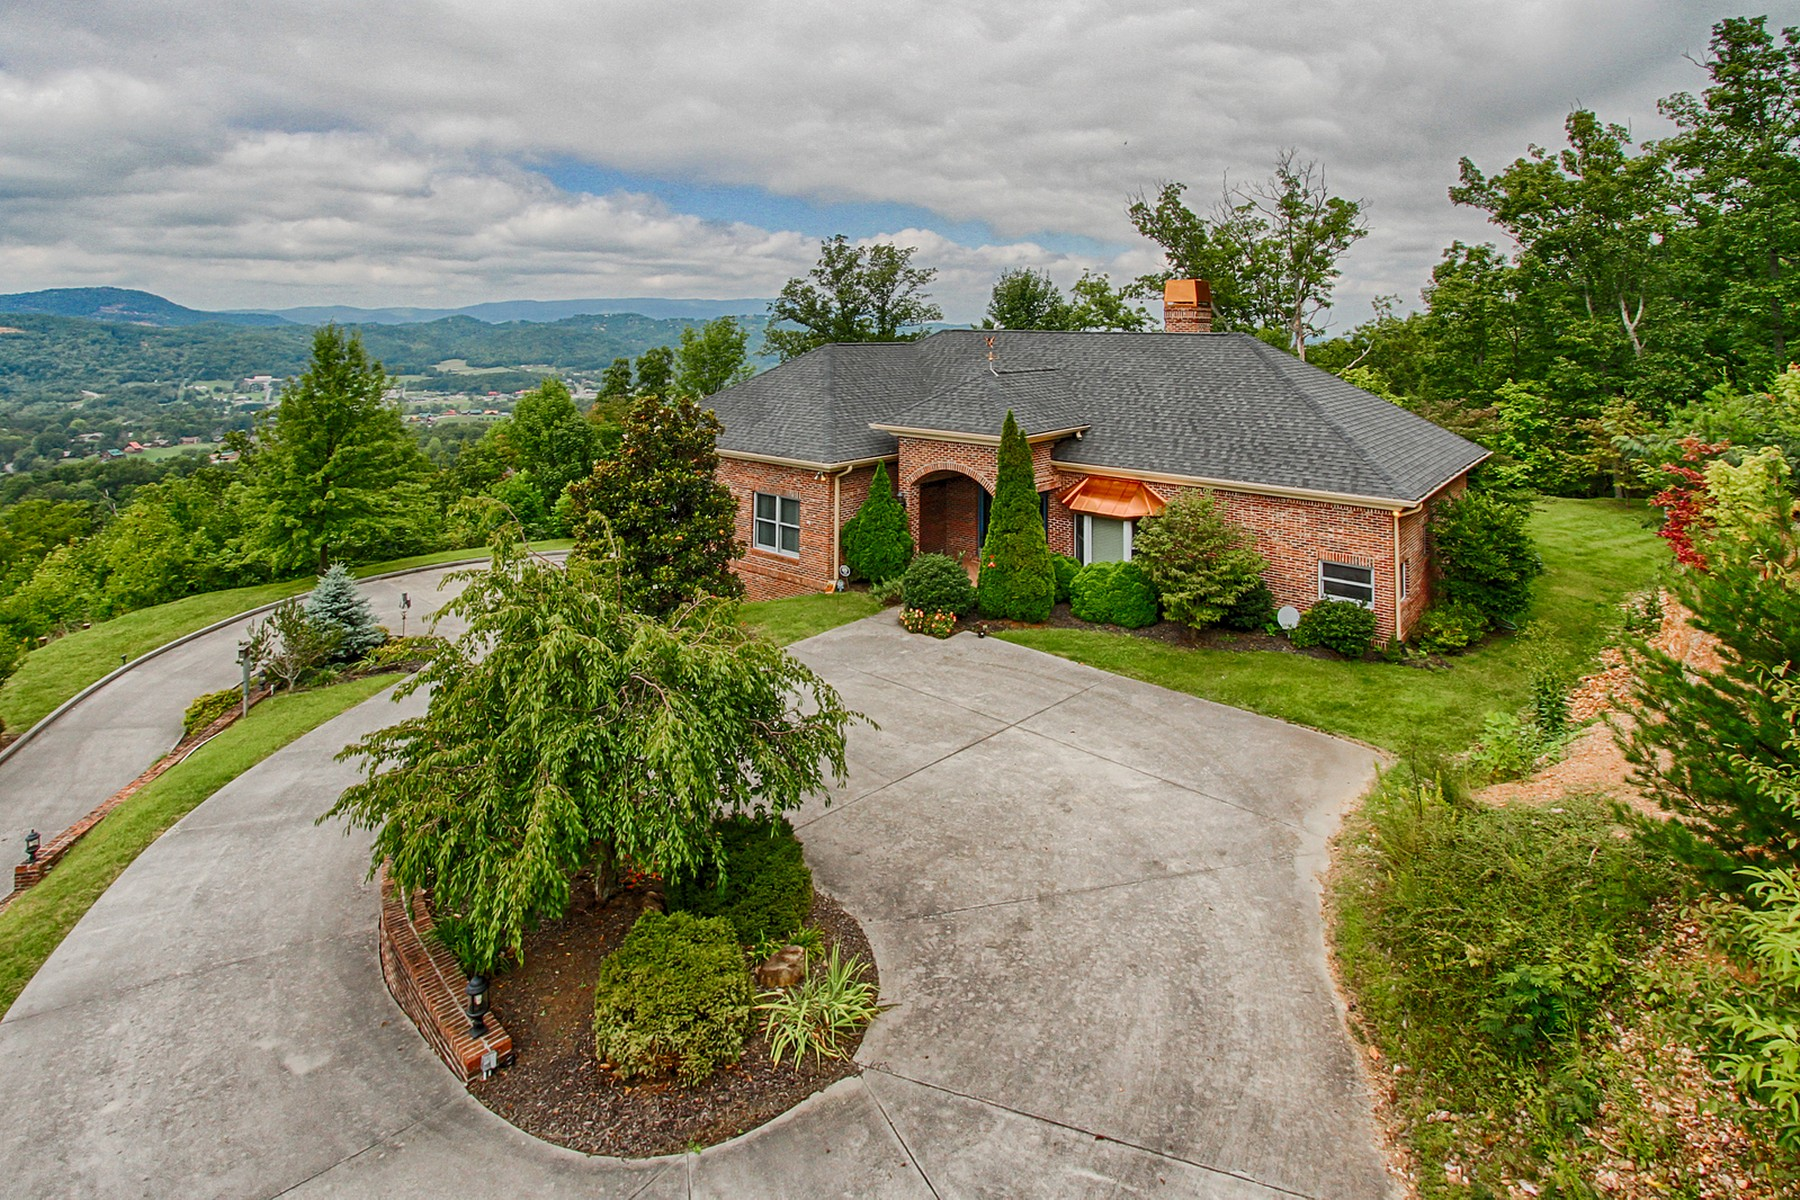 Casa Unifamiliar por un Venta en Gorgeous Views of the Tennessee Smoky Mountains! 3121 Smokies Edge Road Sevierville, Tennessee, 37862 Estados Unidos